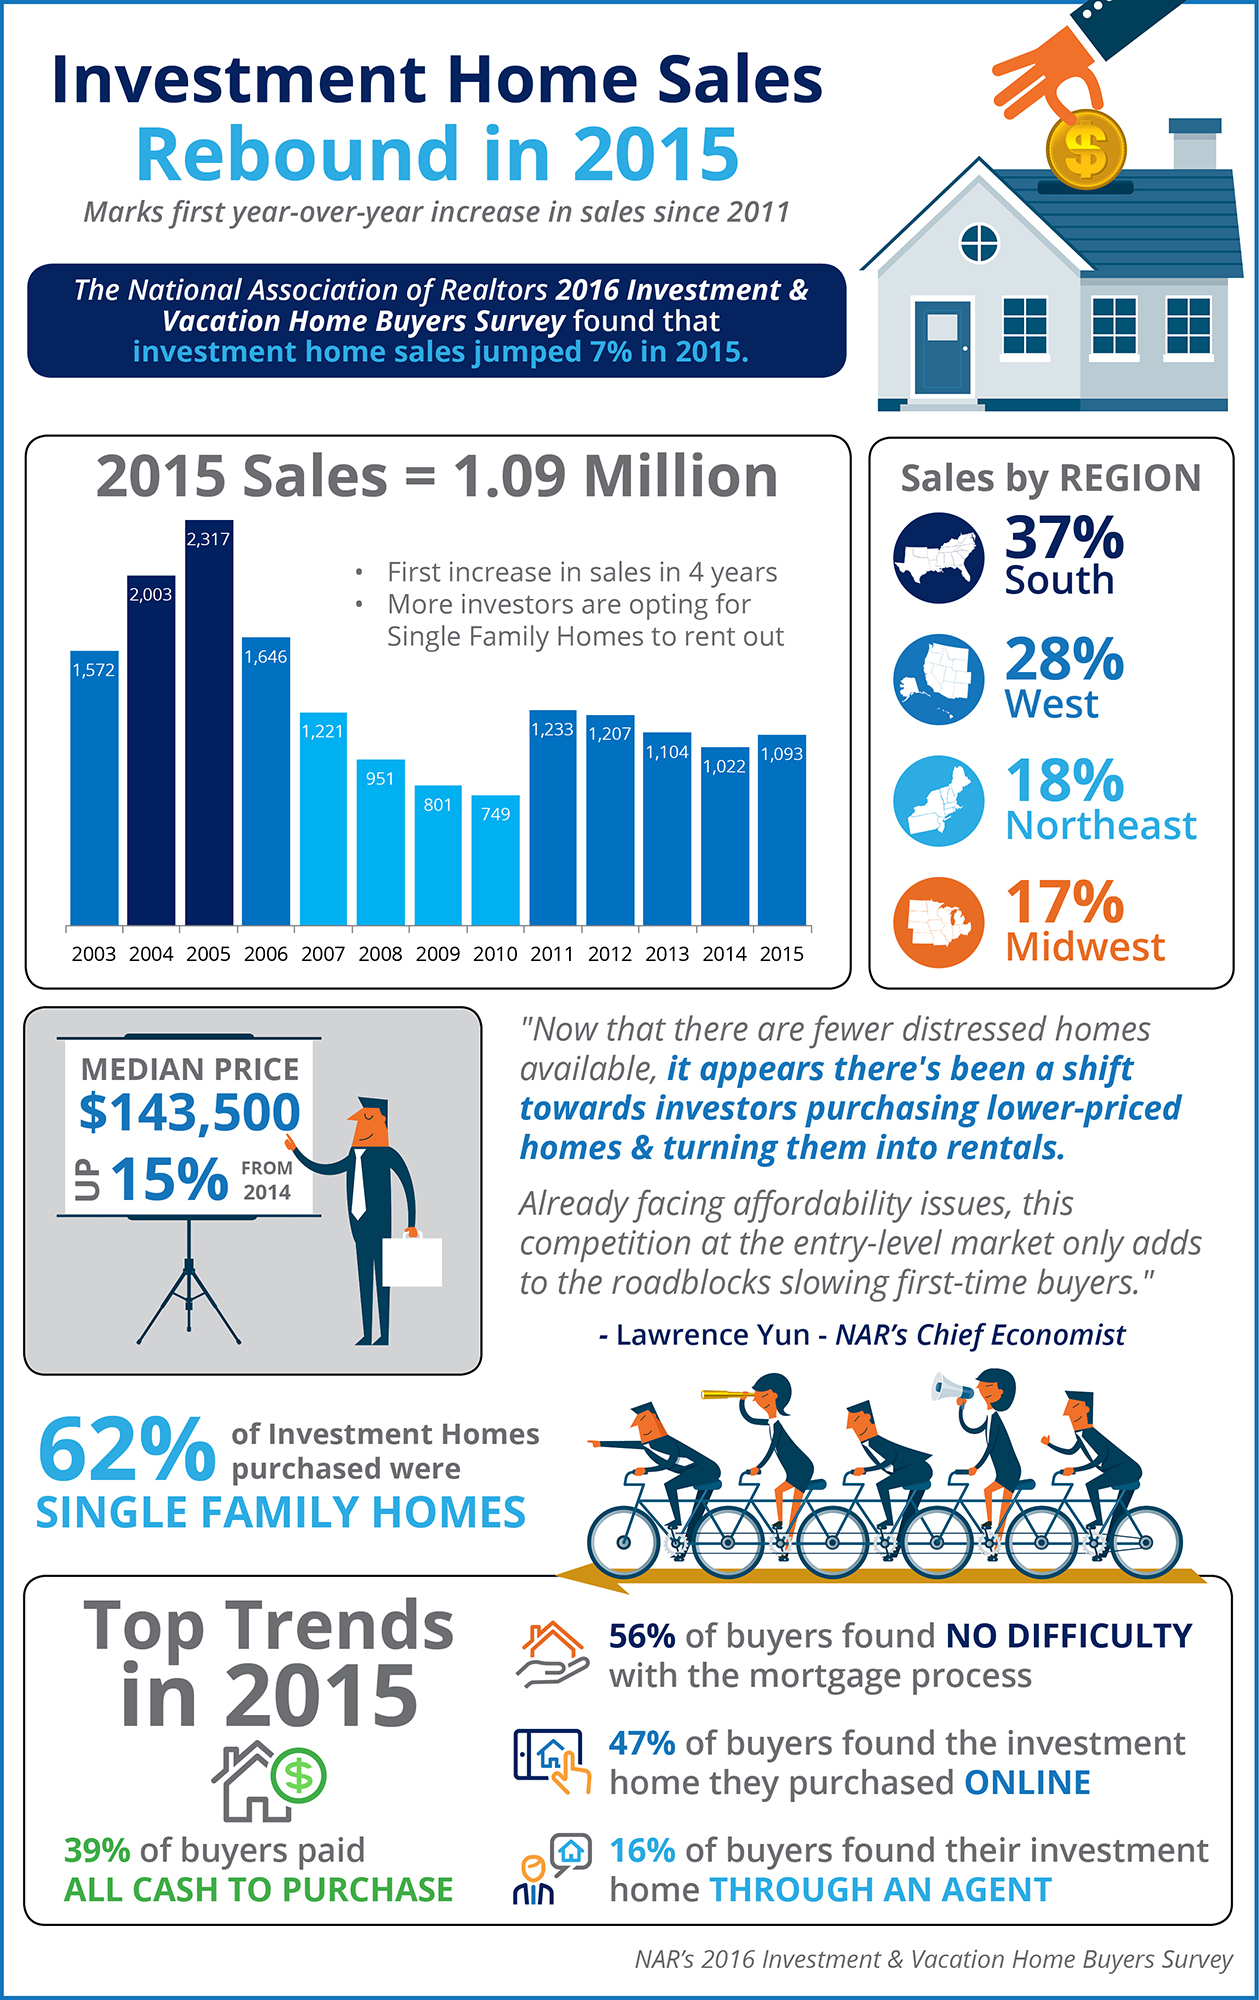 Investment Home Sales Rebound in 2015 | Simplifying The Market